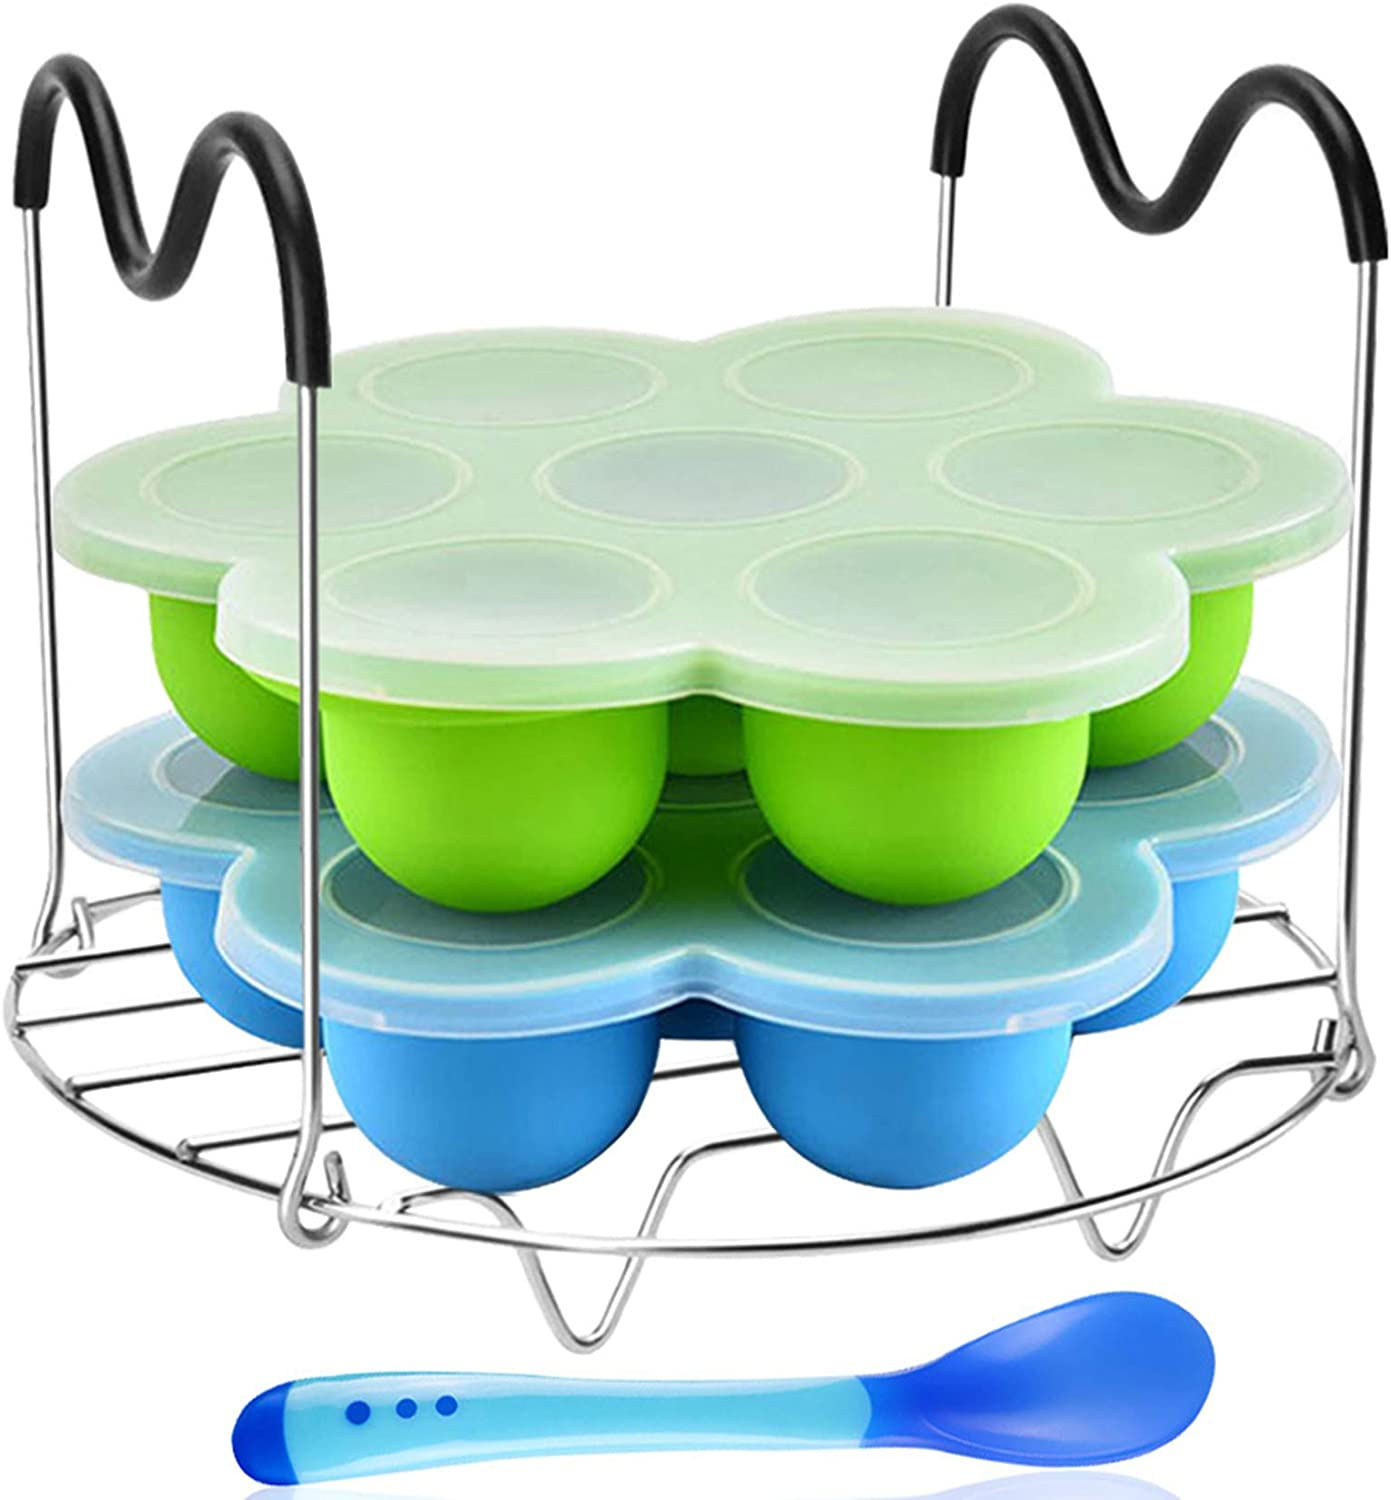 Silicone Egg Bites Mold Set of 4, Steamer Rack with Heat resistant Handle and Spoon,Reusable Sous Vide Egg Poacher with Lid Fits Instant Pot 5,6,8 qt Pressure Cooker